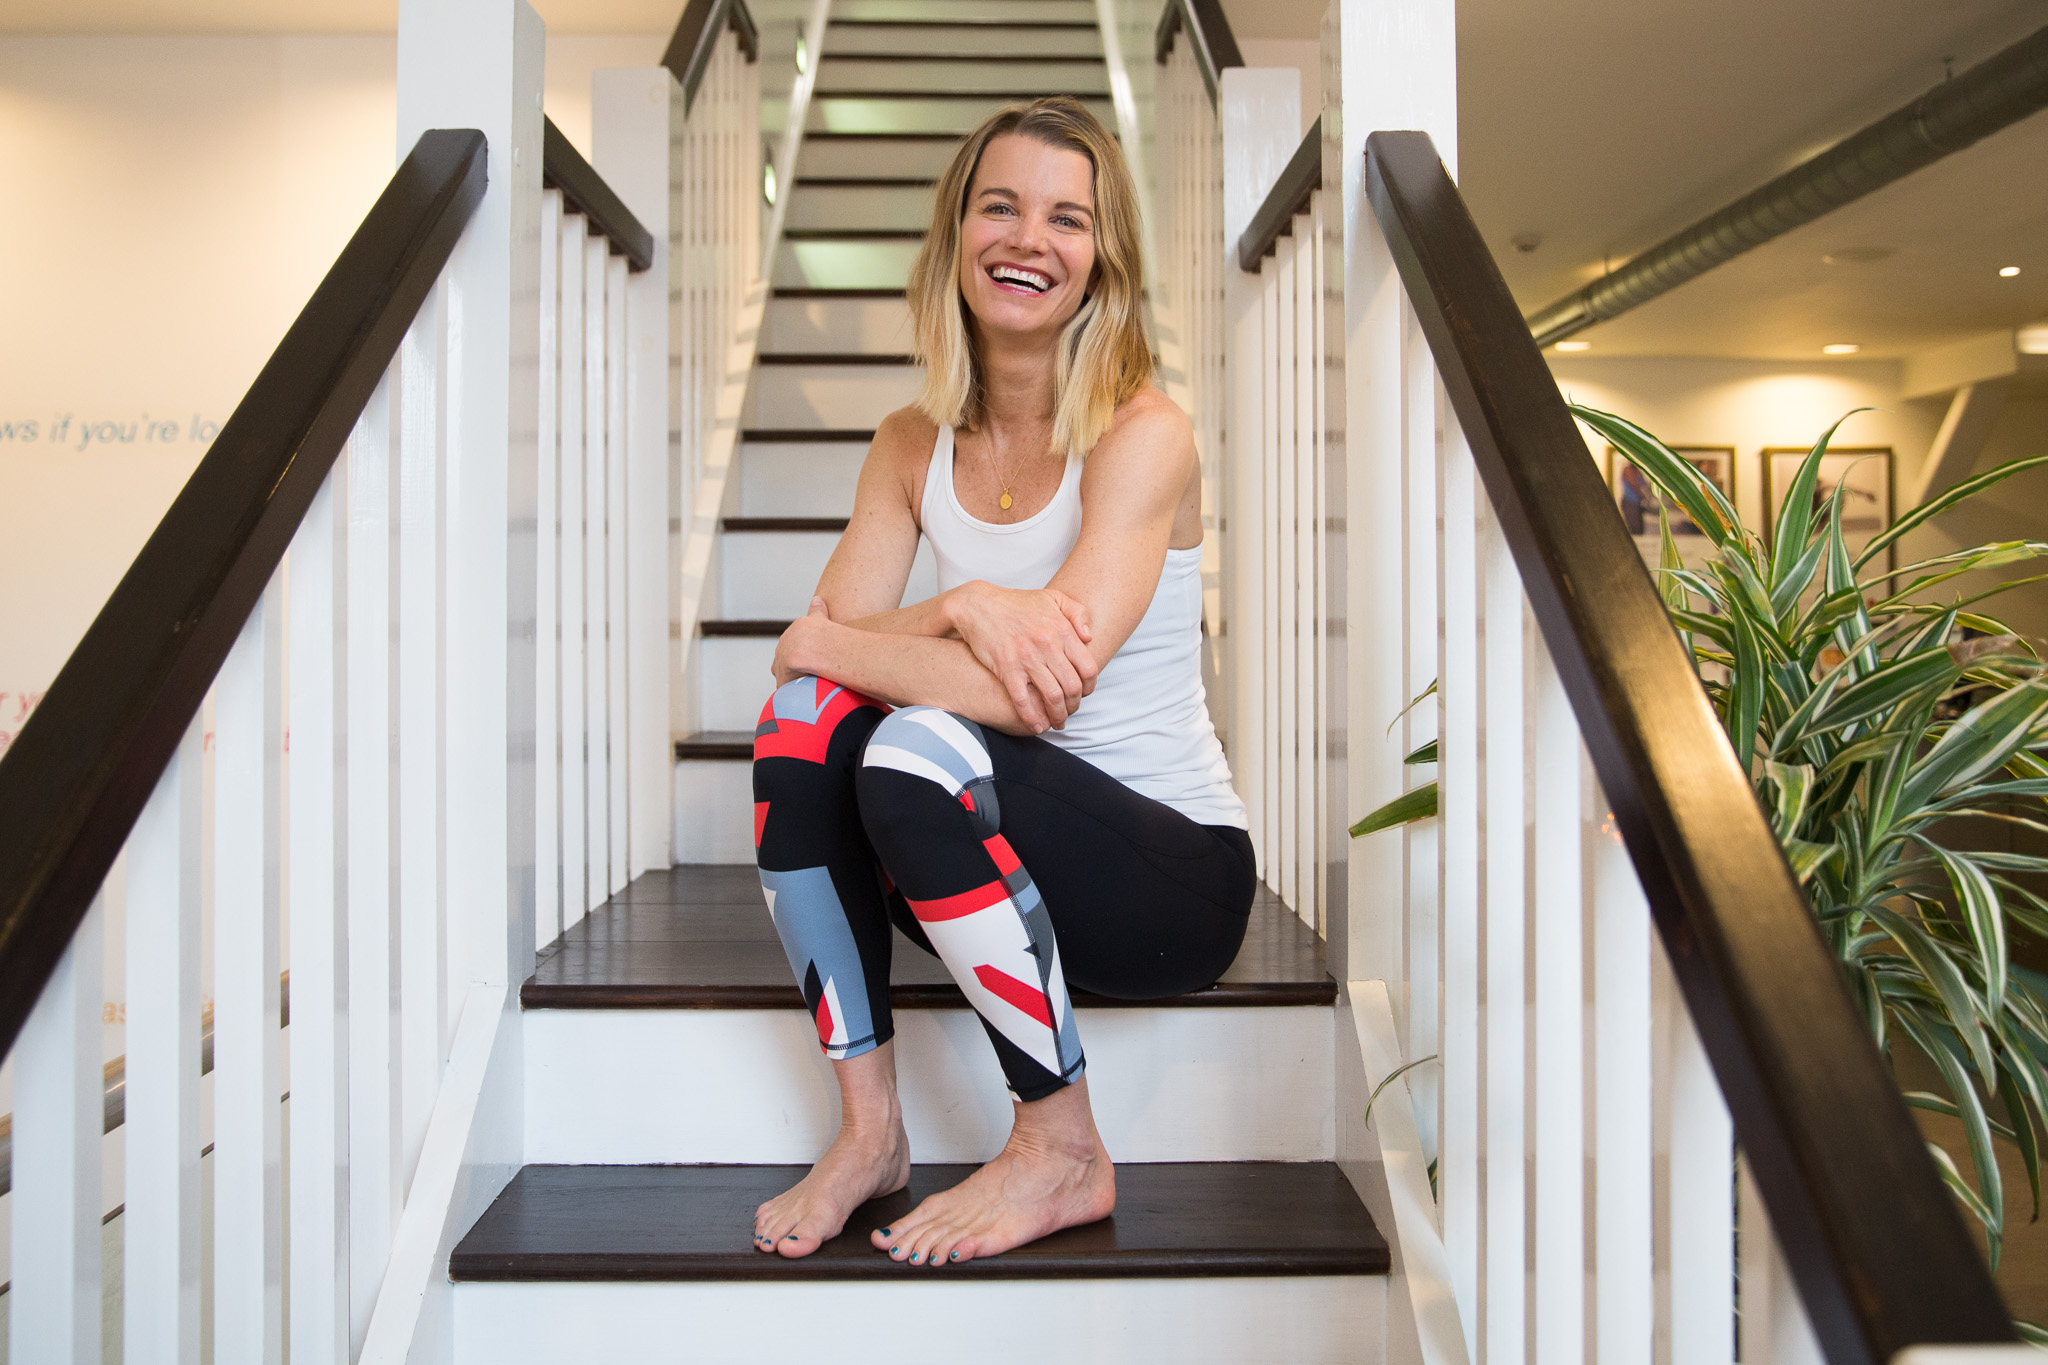 Julie Montagu - yoga teacher, nutritionist, bestselling author, holistic teacher, Royal Wedding presenter